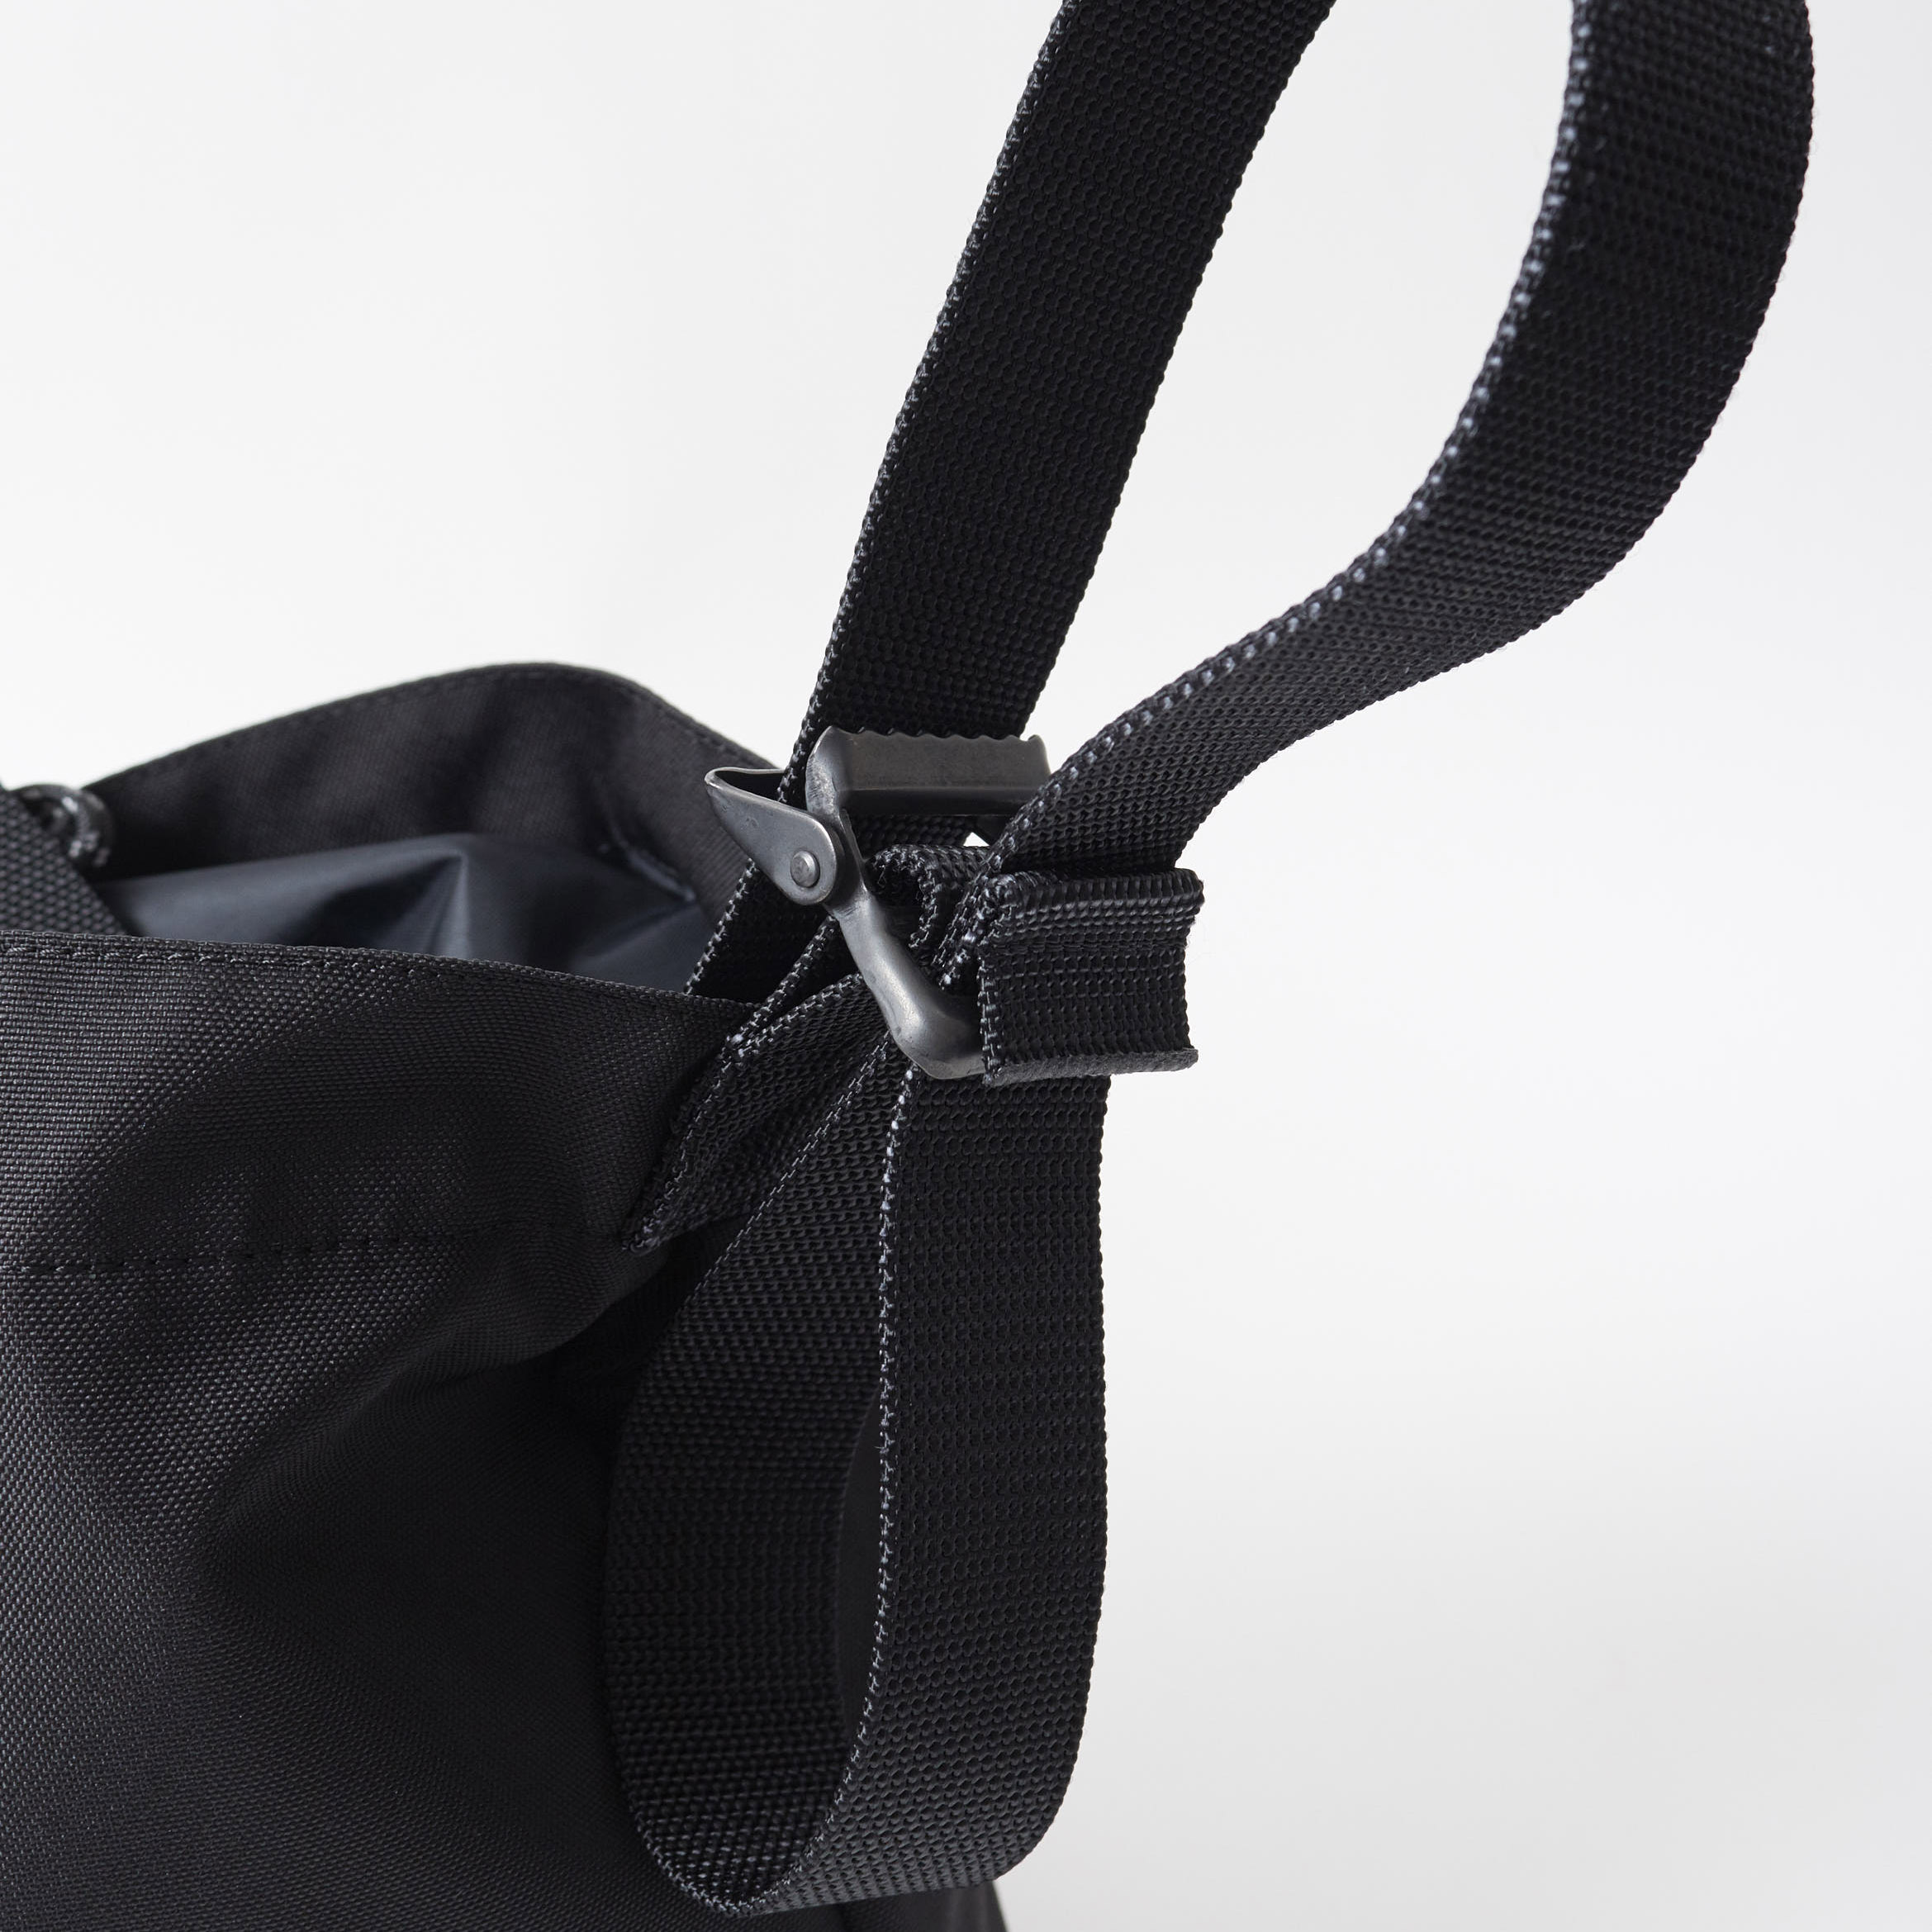 NO FLAP SLING BLK 5